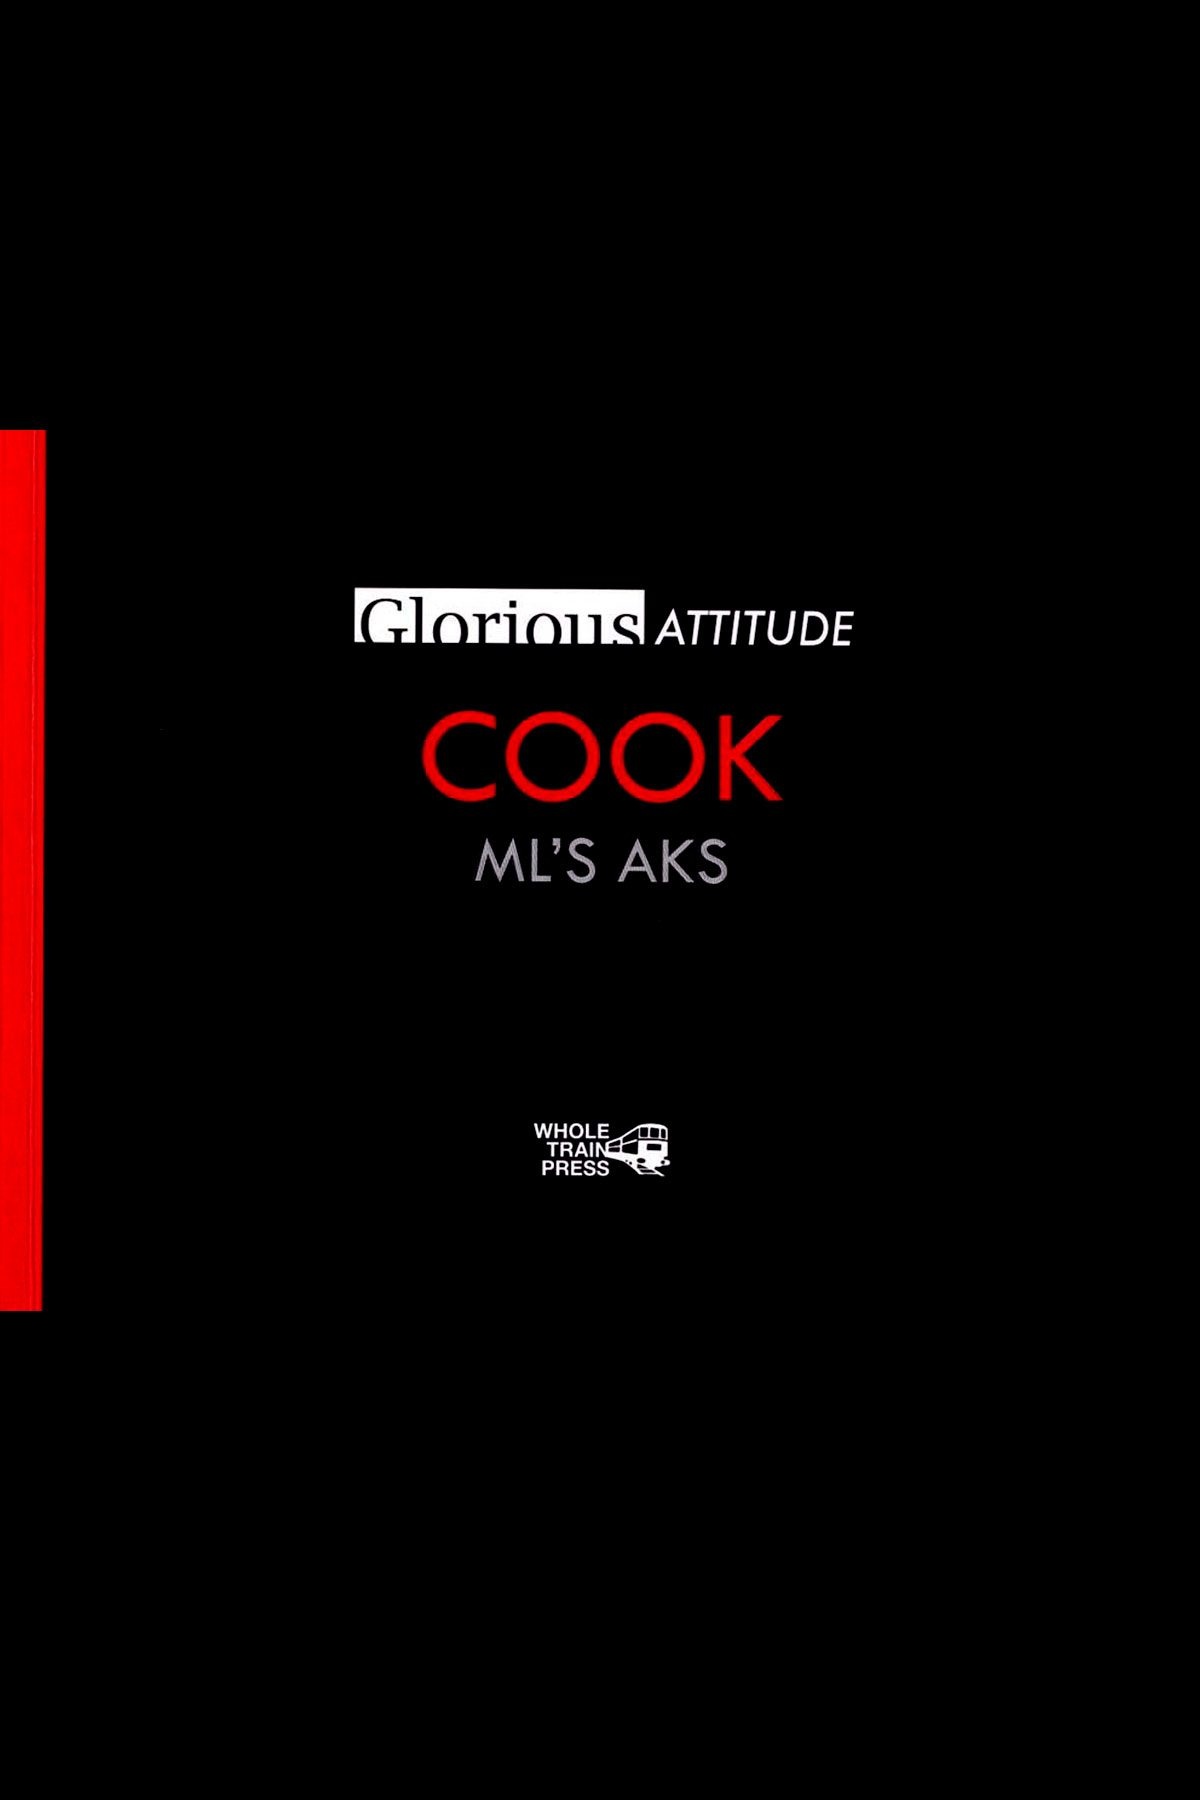 COOK ML'S AKS - Glorious Attitude